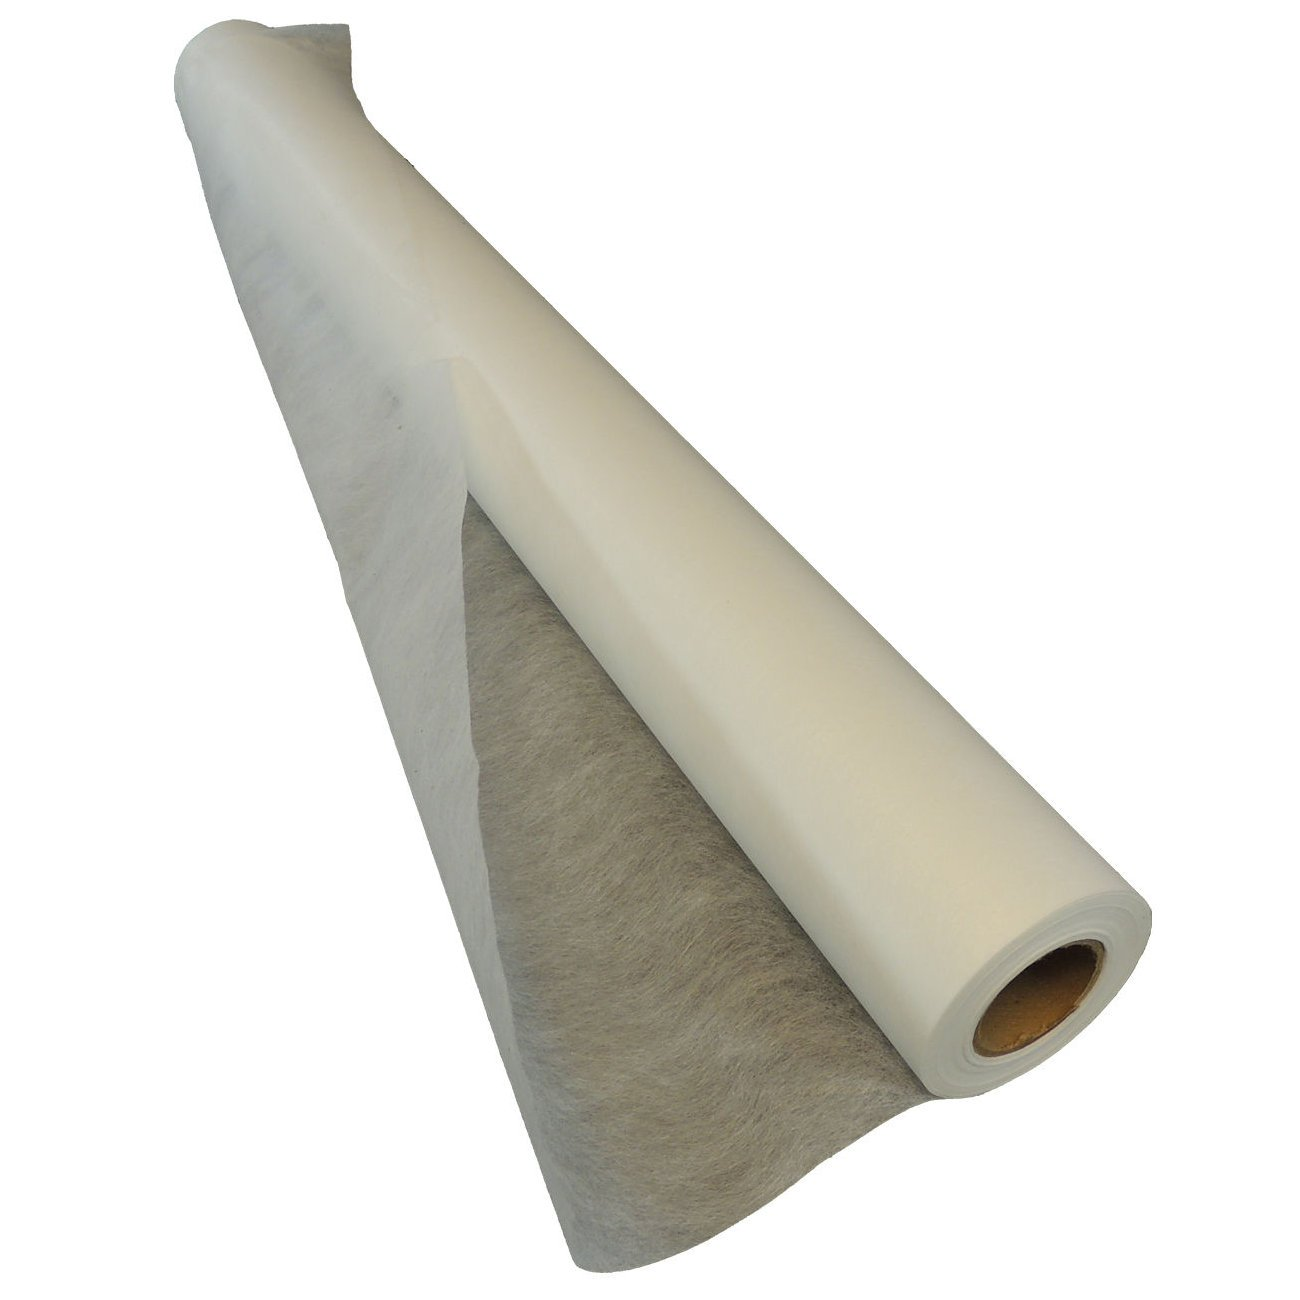 Artograph 1530 Spray Booth Replacement Pre-Filter Roll (30 x 50 yards) 225-349